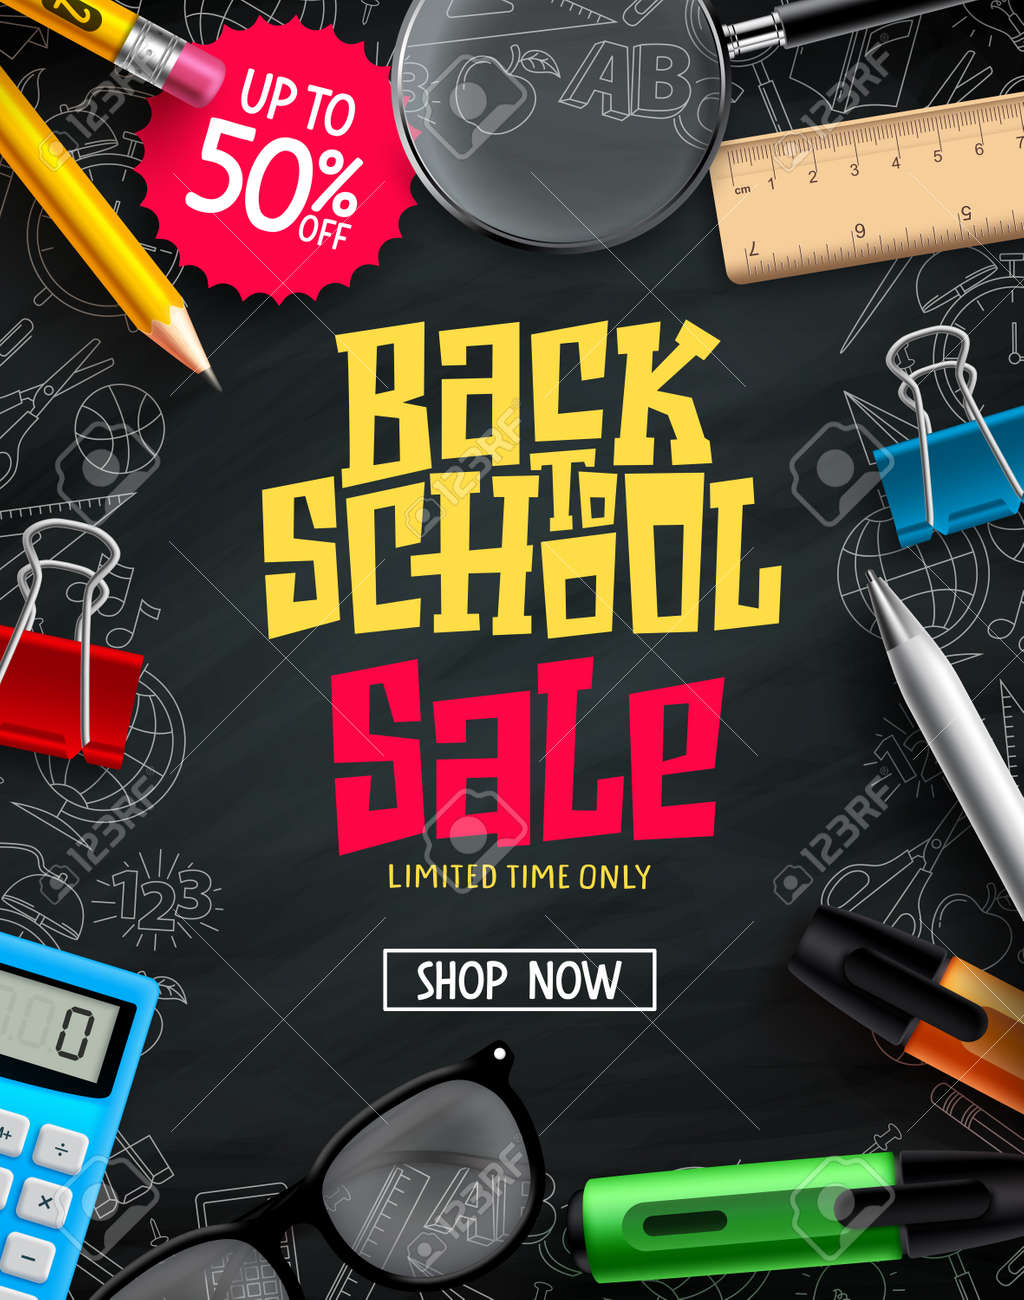 Back to school sale vector poster design. Back to school promotion text with 50% discount of educational supplies in black background . Vector illustration - 168629306